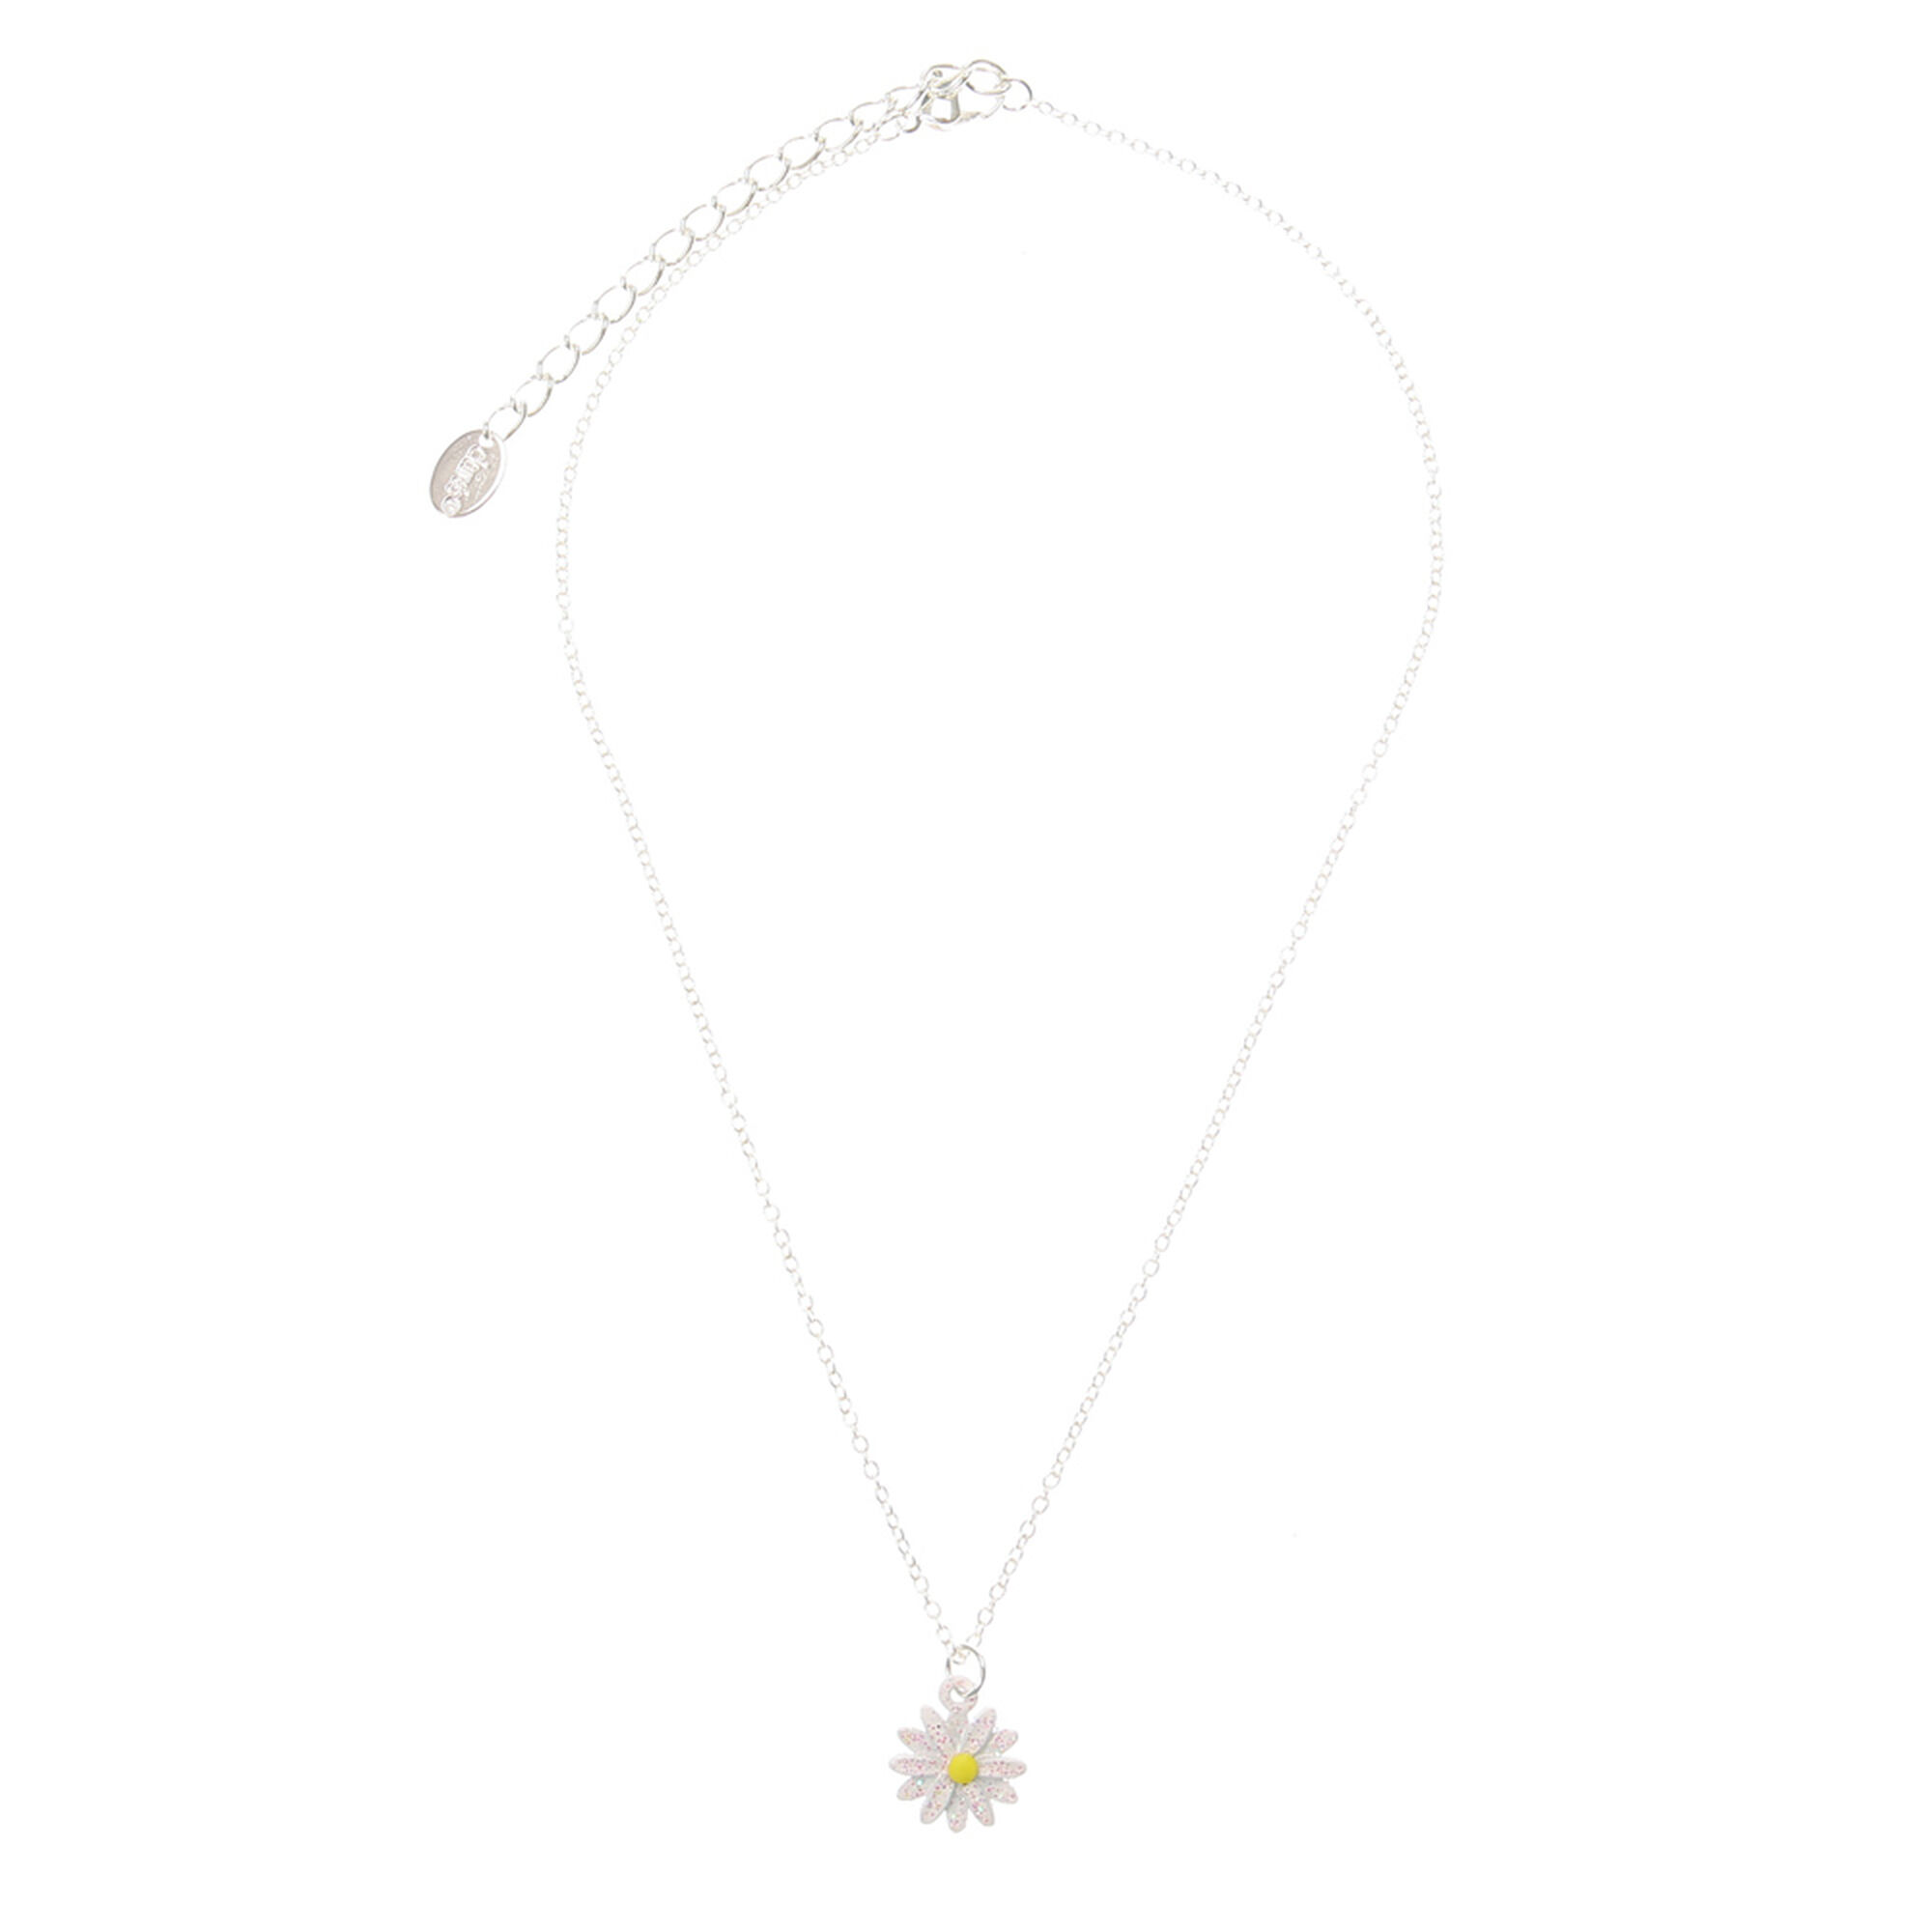 pendant products preview martick tiny daisy jewellery highres